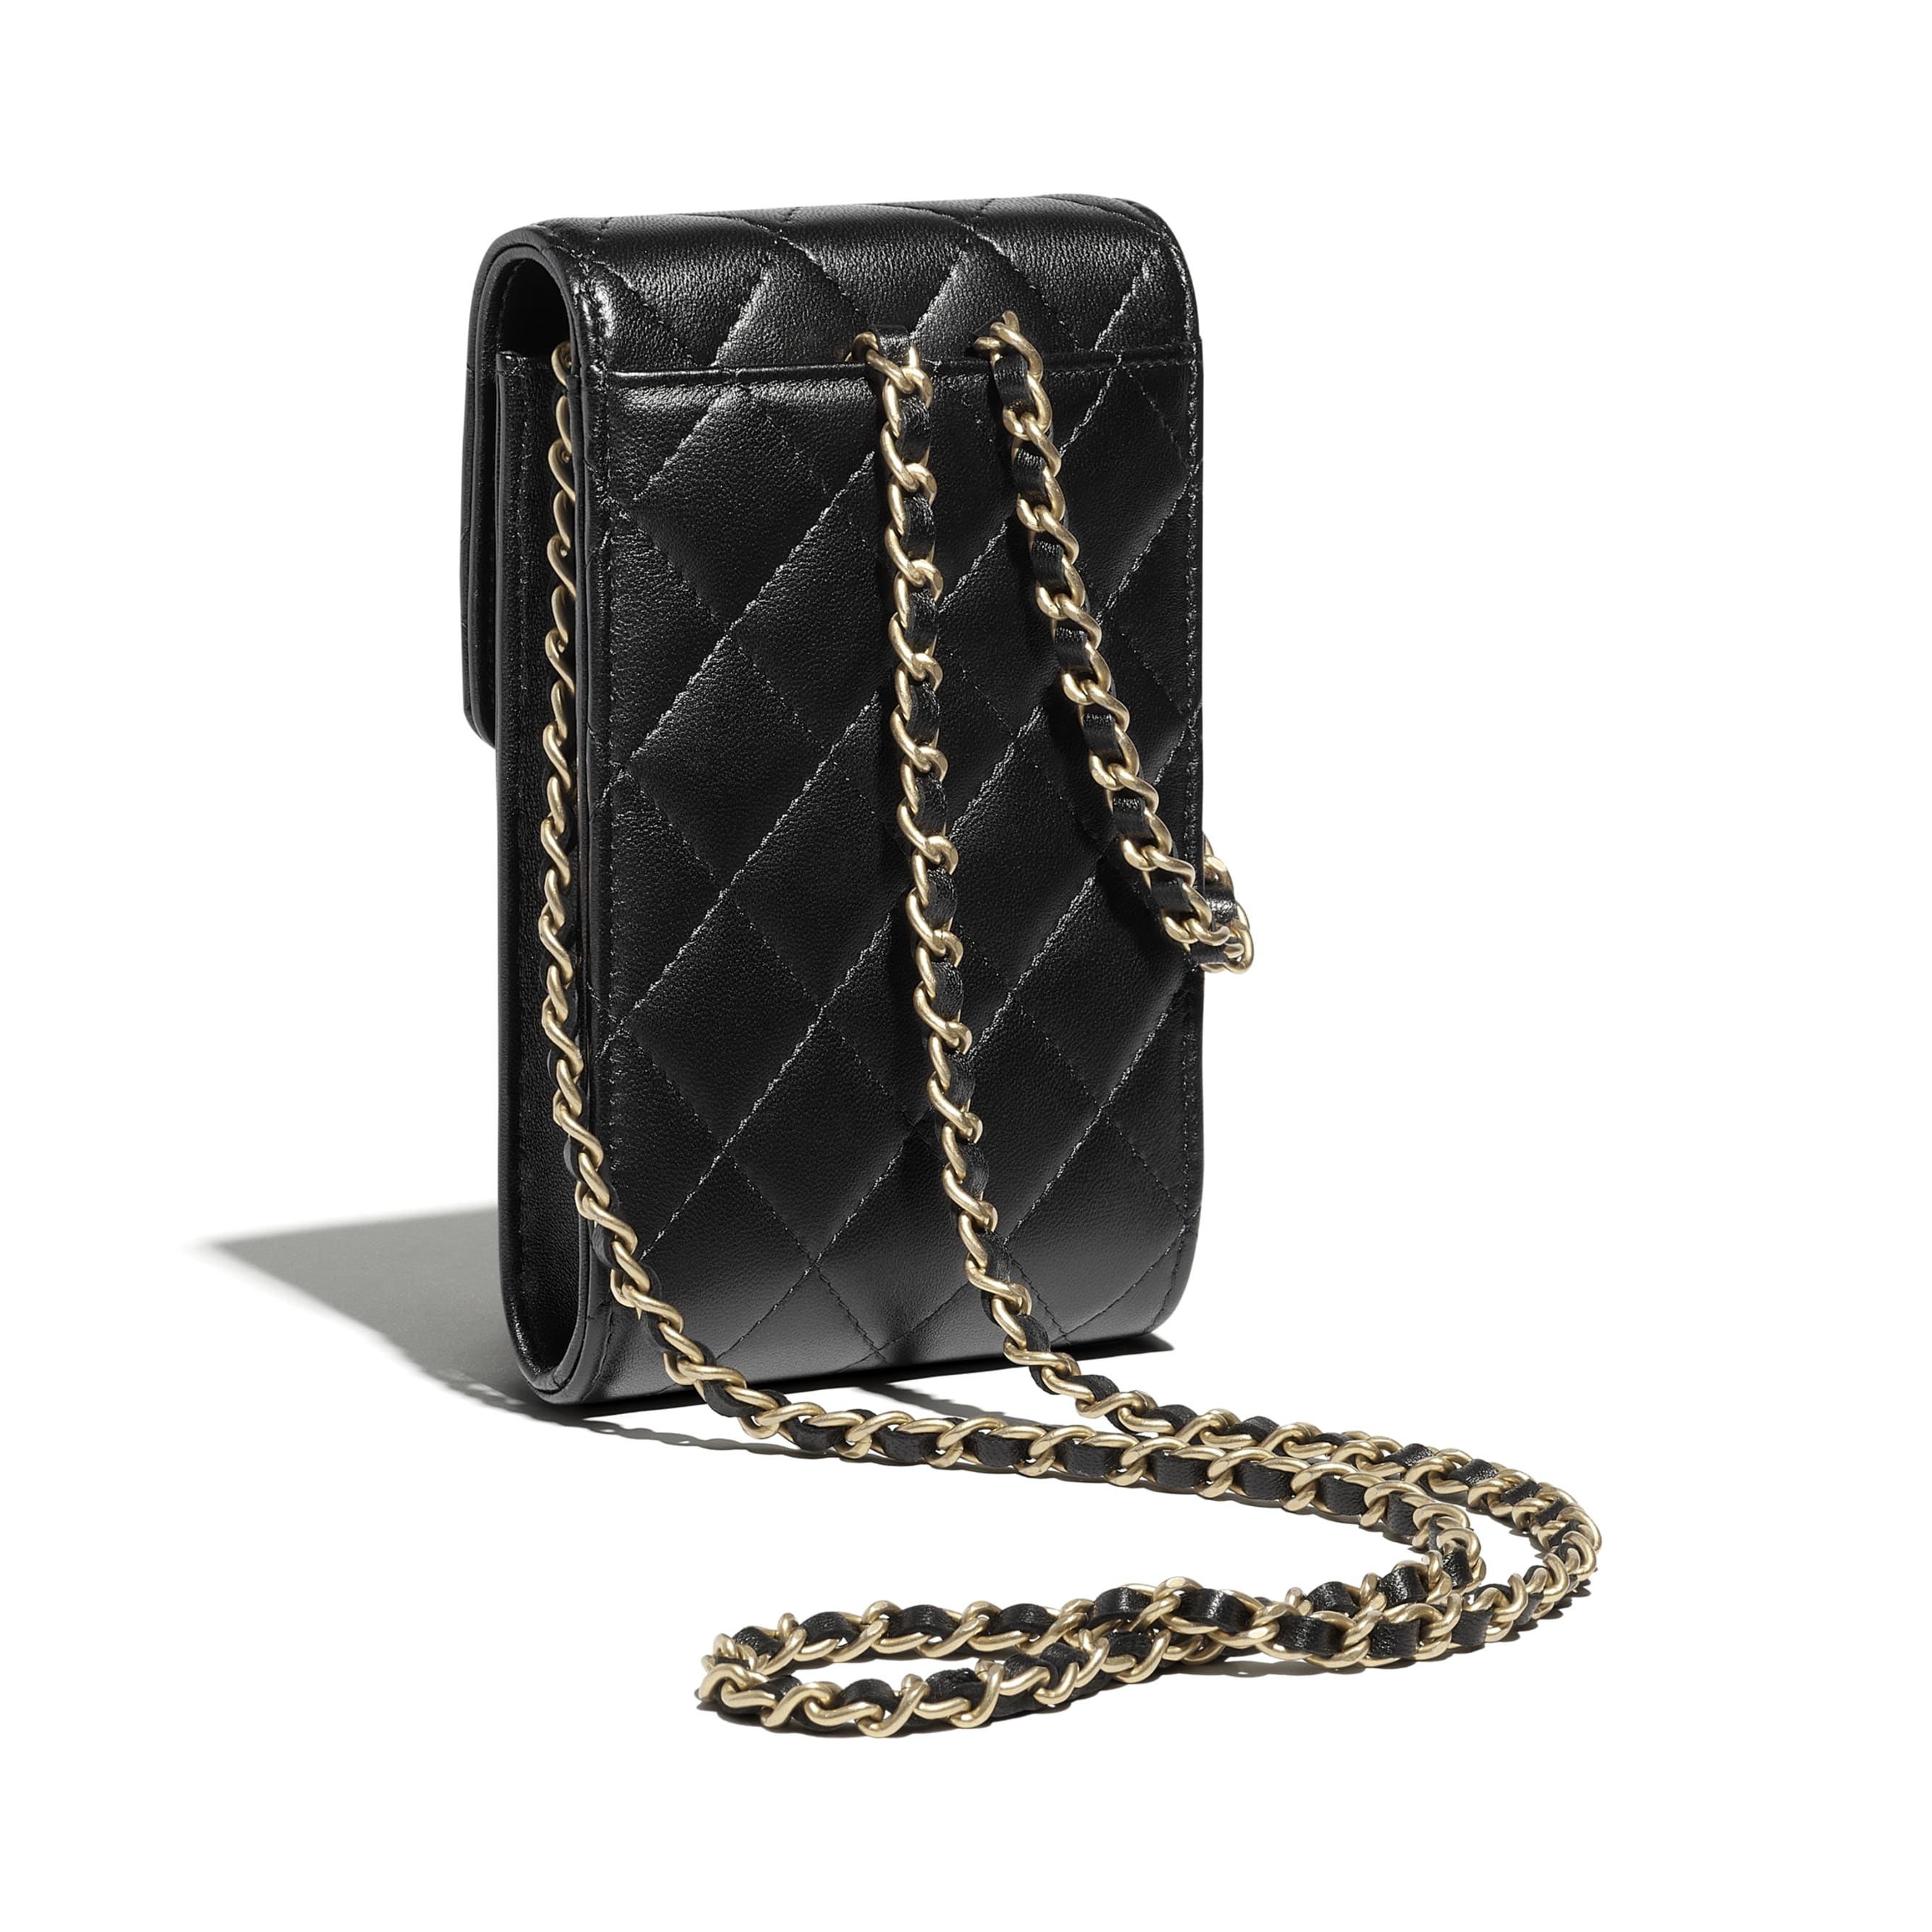 Phone Holder With Chain - Black - Lambskin - CHANEL - Extra view - see standard sized version